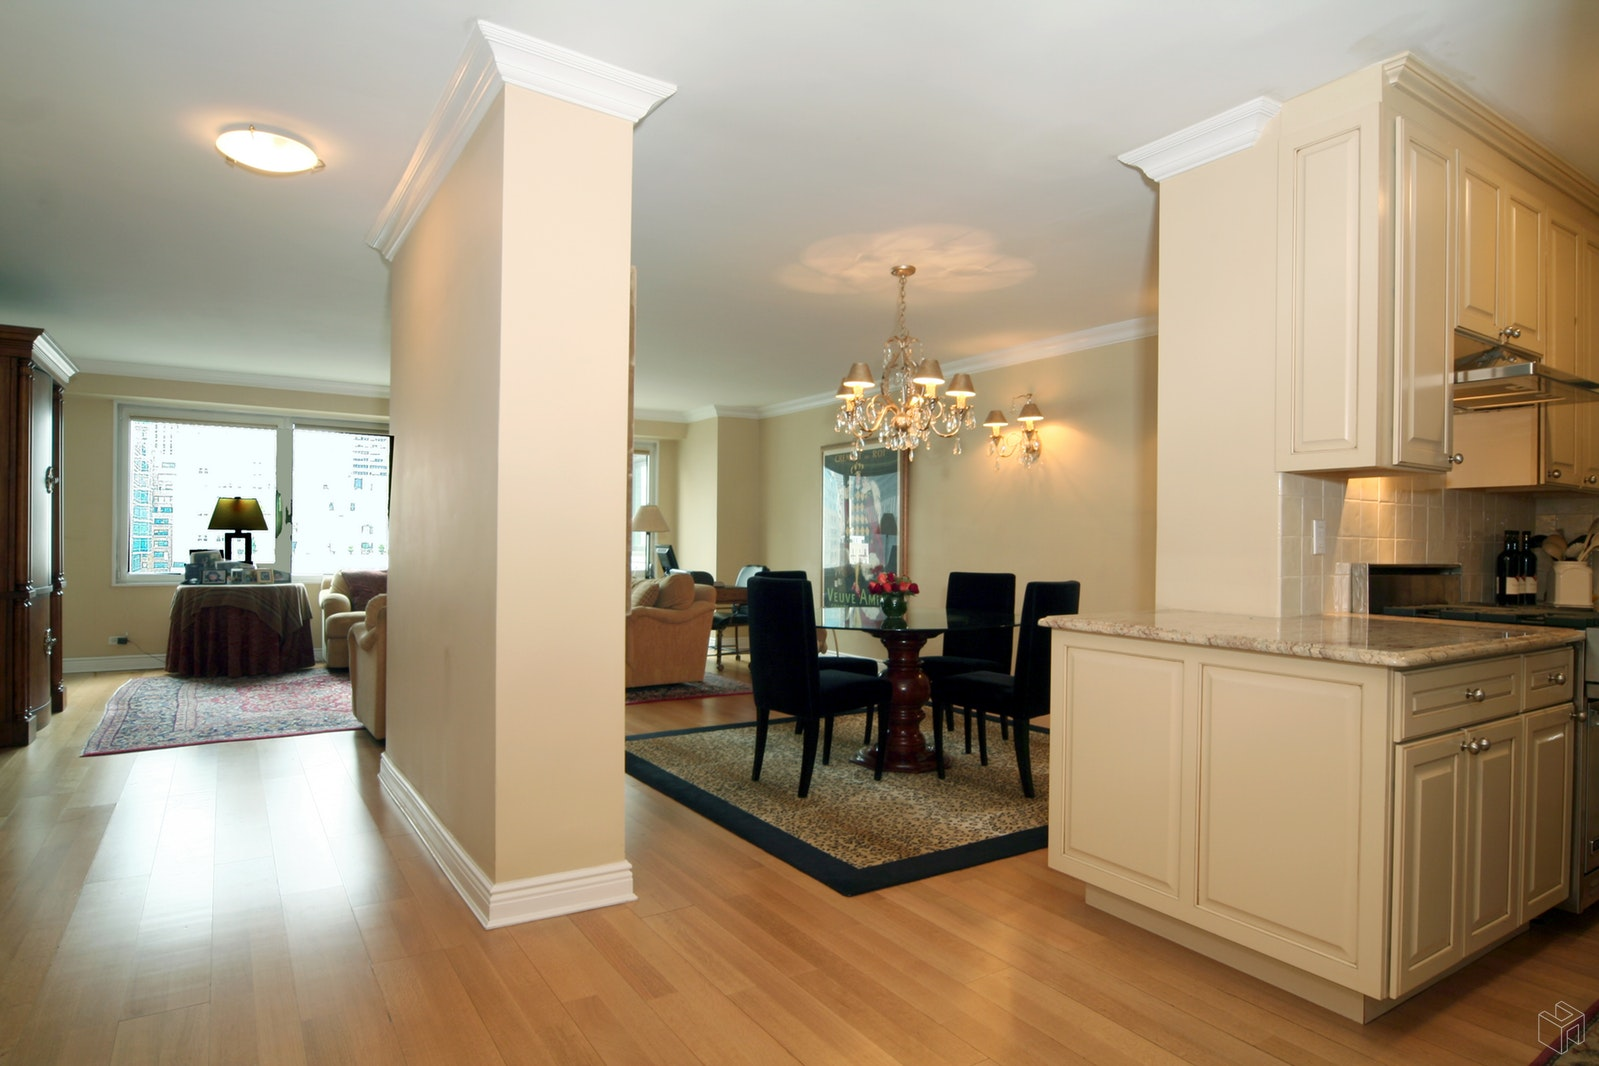 303 East 57th Street 9f, Midtown East, NYC, 10022, $590,000, Property For Sale, Halstead Real Estate, Photo 4